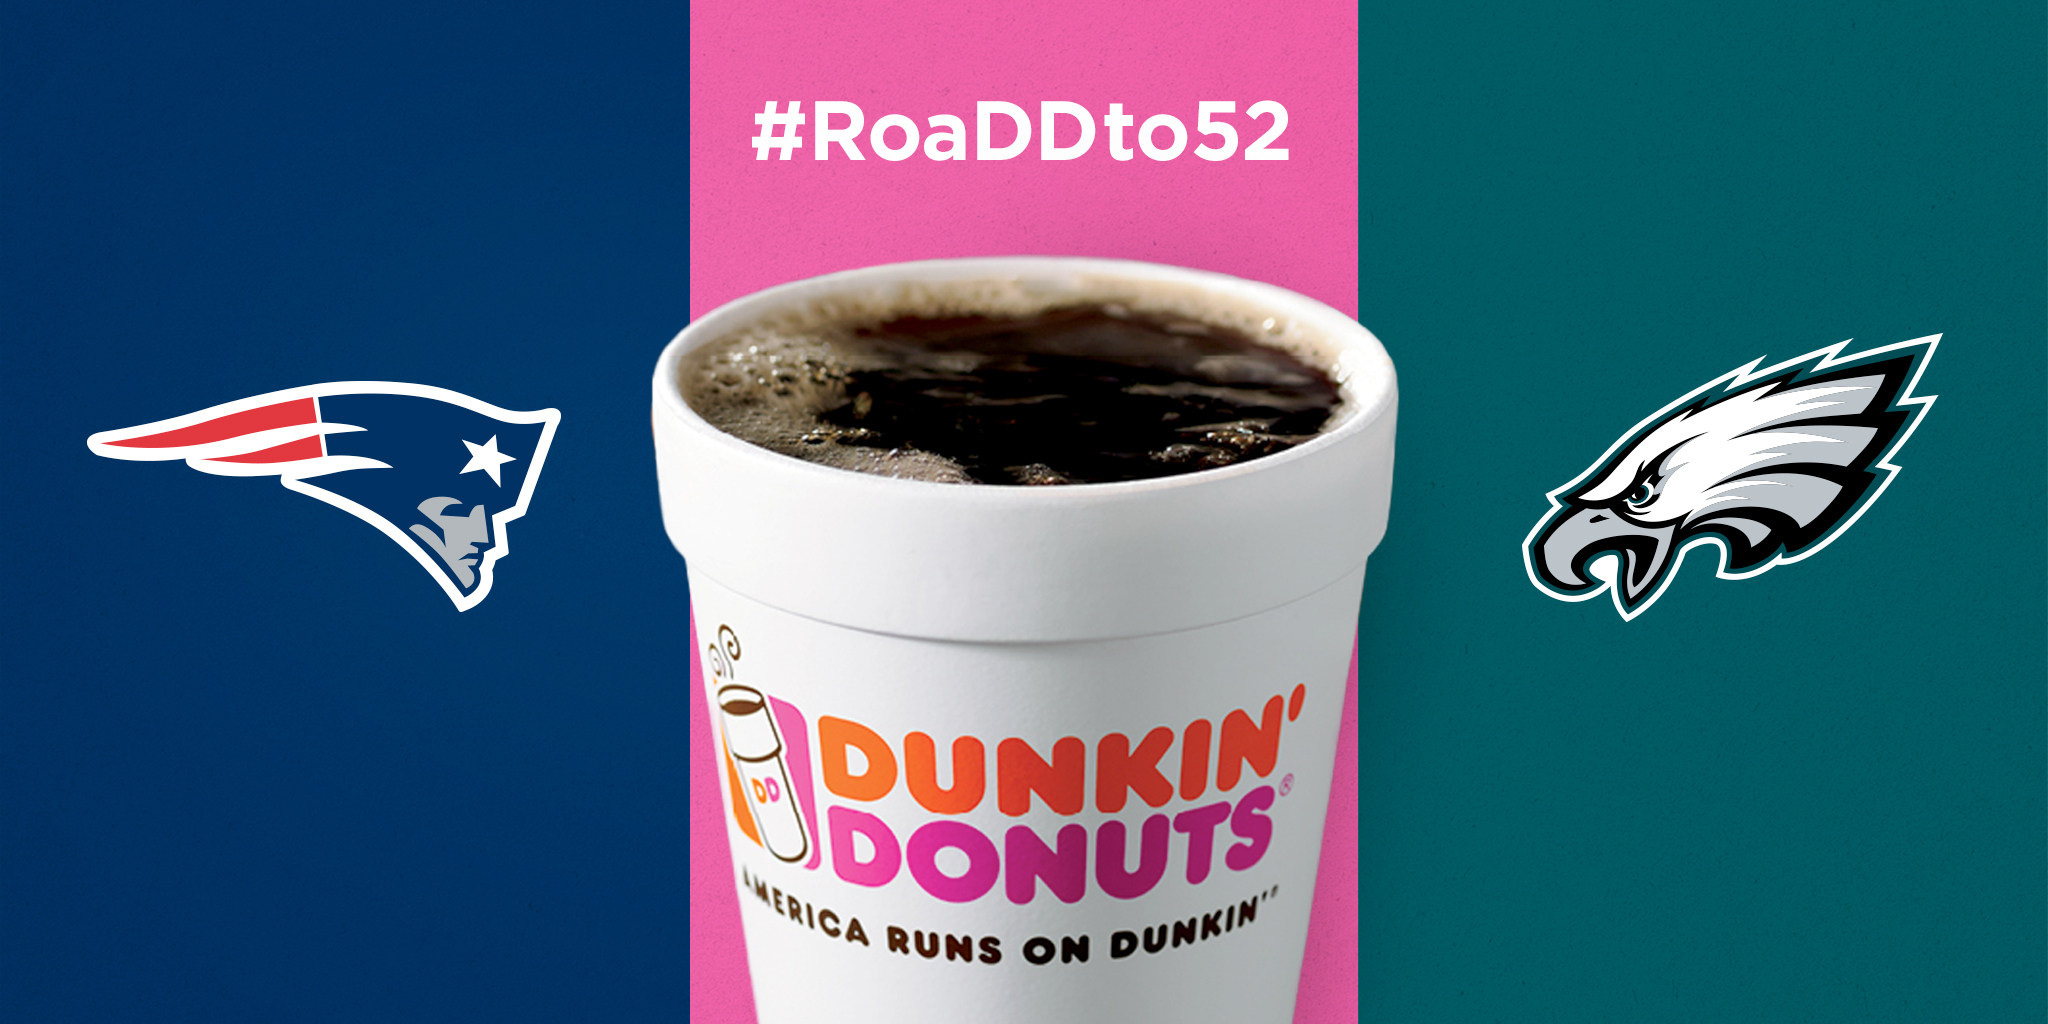 Wondrous Donuts Kicks Off Countdown To Game Day Roadd To Dunkin Donuts Hot Chocolate Calories Medium Dunkin Donuts Hot Chocolate Box Price nice food Dunkin Donuts Hot Chocolate